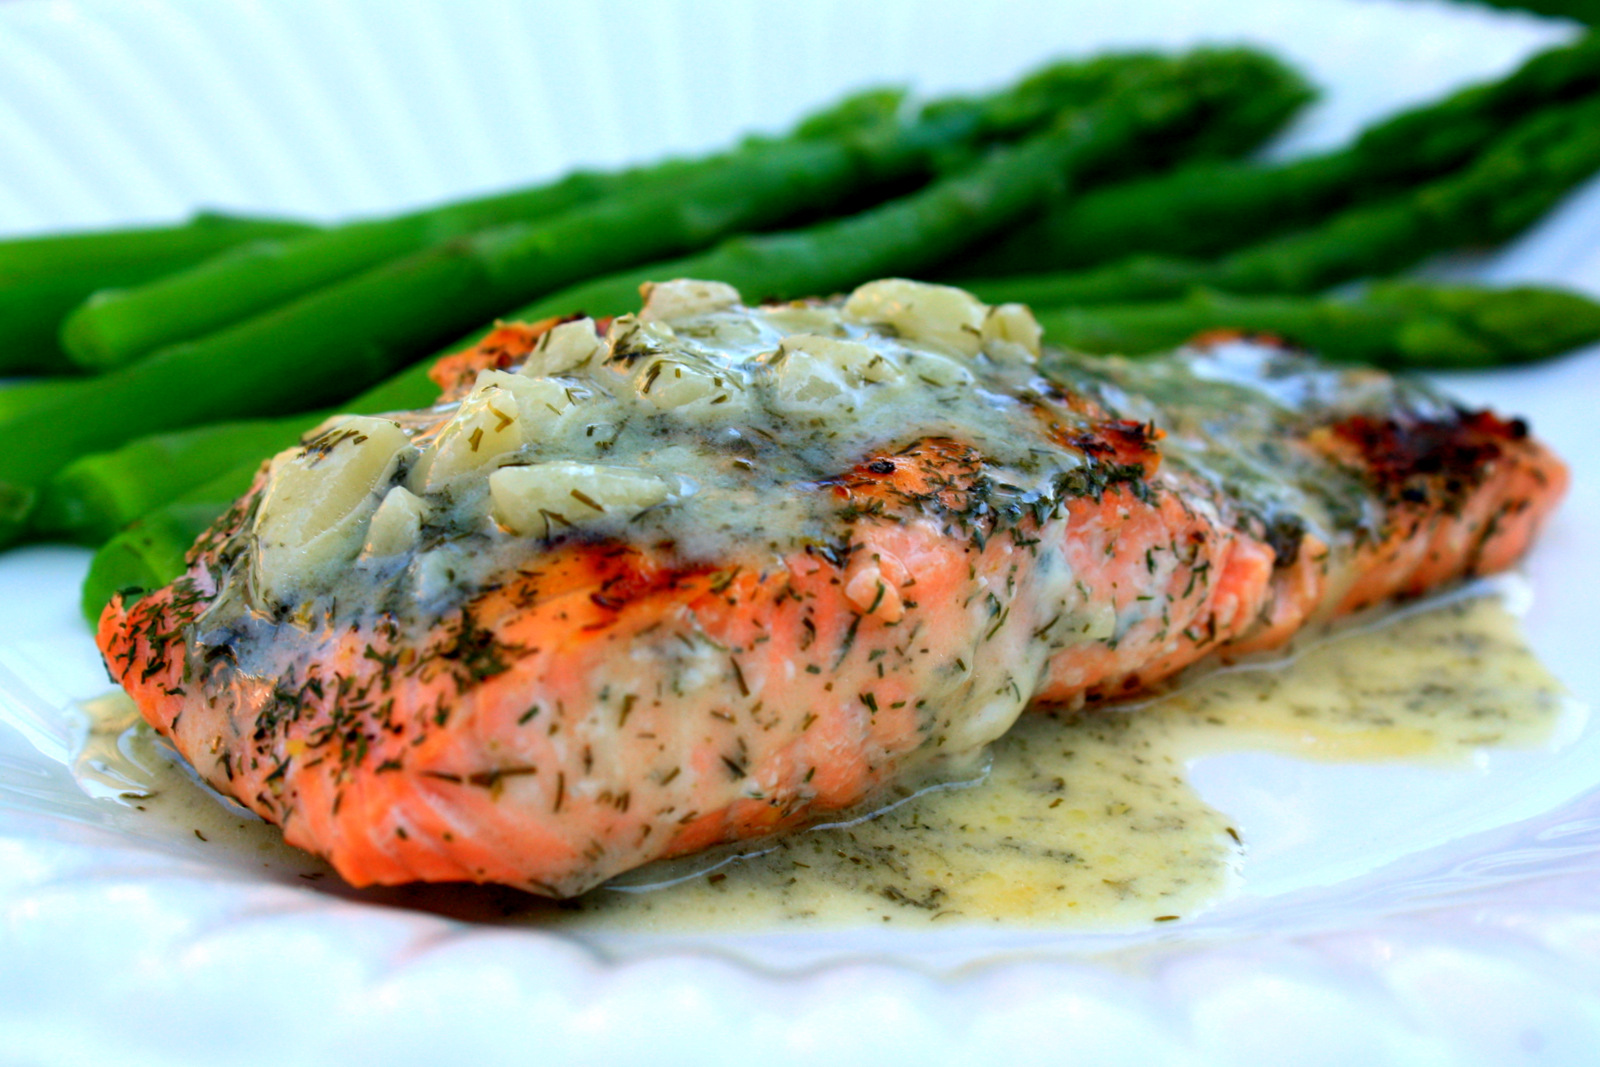 We love to grill fish, especially salmon. This Salmon With Tangy Dill ...